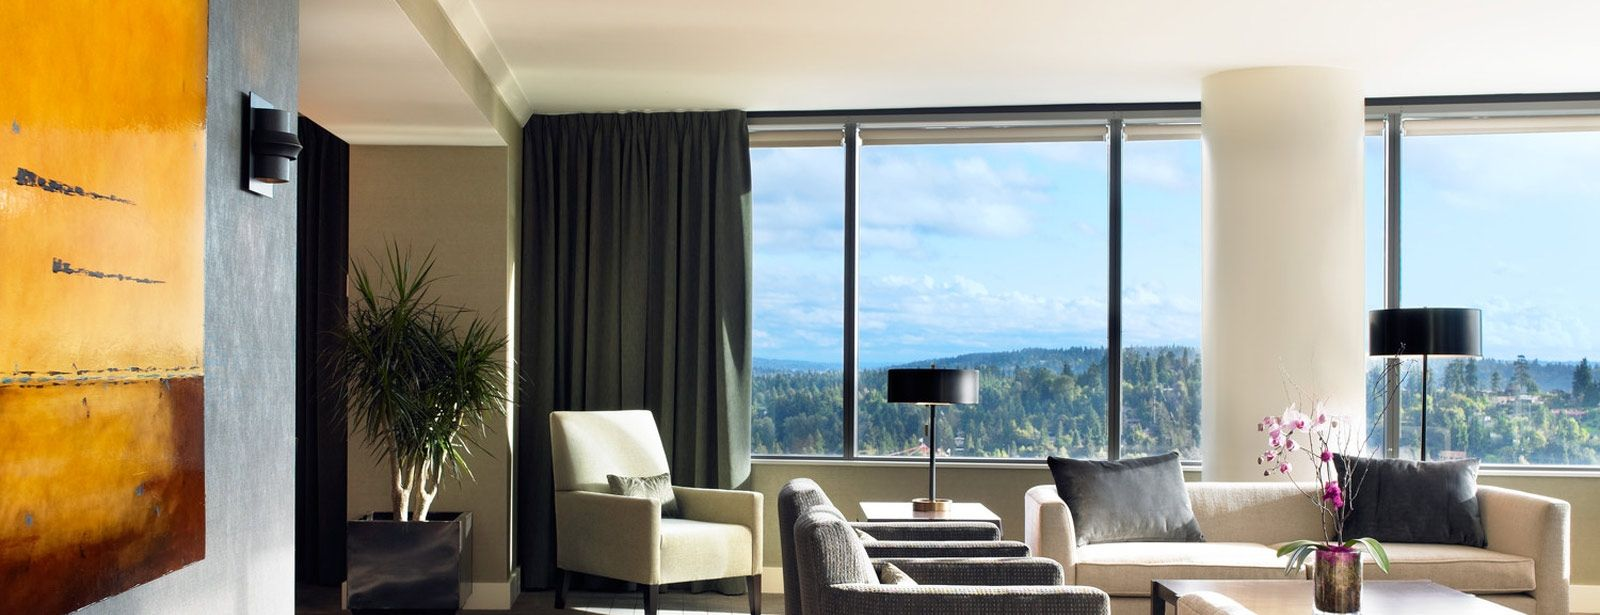 The Luxury Chairman Suite at the Westin Bellevue - complete with views of Mt. Rainier and Lake Washington.